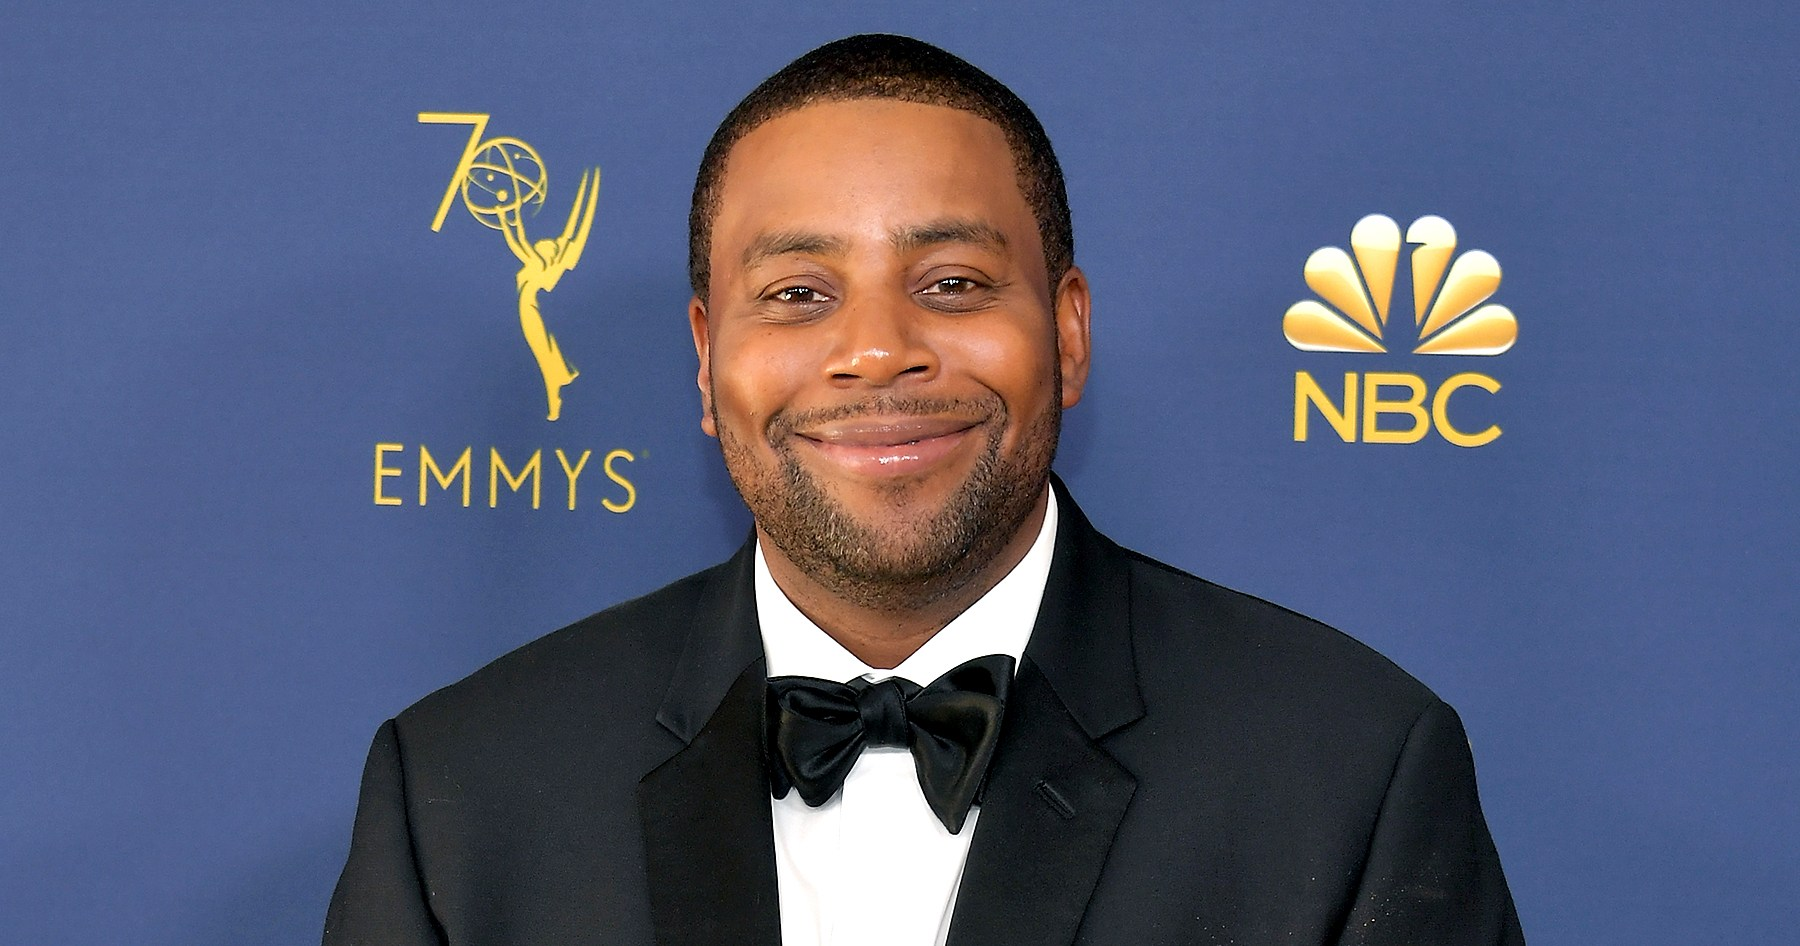 Kenan Thompson: 25 Things You Don't Know About Me ('I Picked Up Playing the Guitar at SNL')